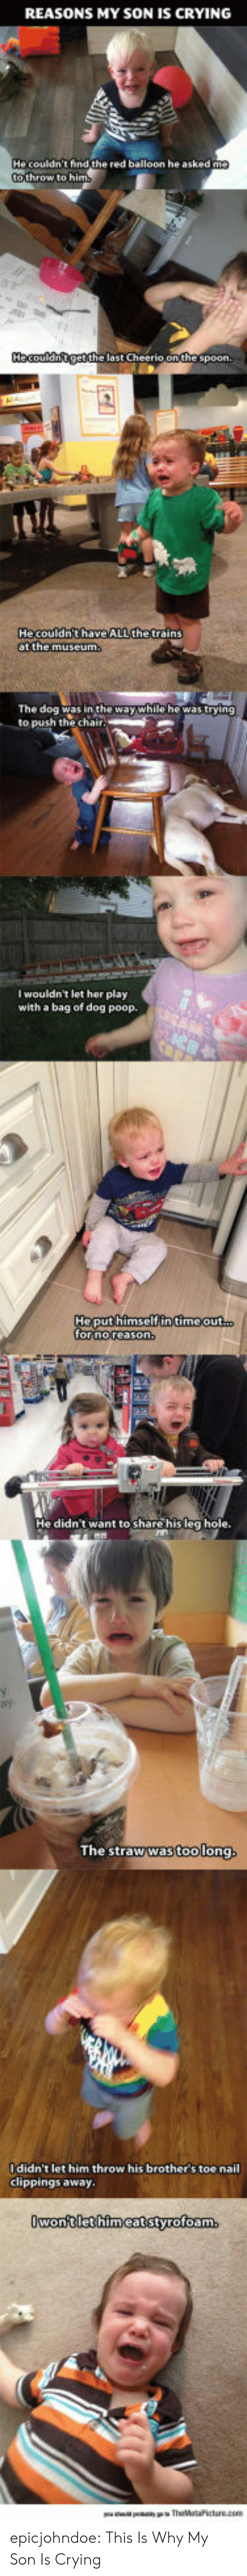 Crying, Poop, and Tumblr: REASONS MY SON IS CRYING  Hecouldnge the last Cheerio onthespoon.  Hecouldn'thaveALL the trains  I wouldn't let her play  with a bag of dog poop.  Heput himself in time out  The straw was too long,  Ididn't let him throw his brother's toe nail  clippings away.  Owon'tlet himcatstyrofoam epicjohndoe:  This Is Why My Son Is Crying